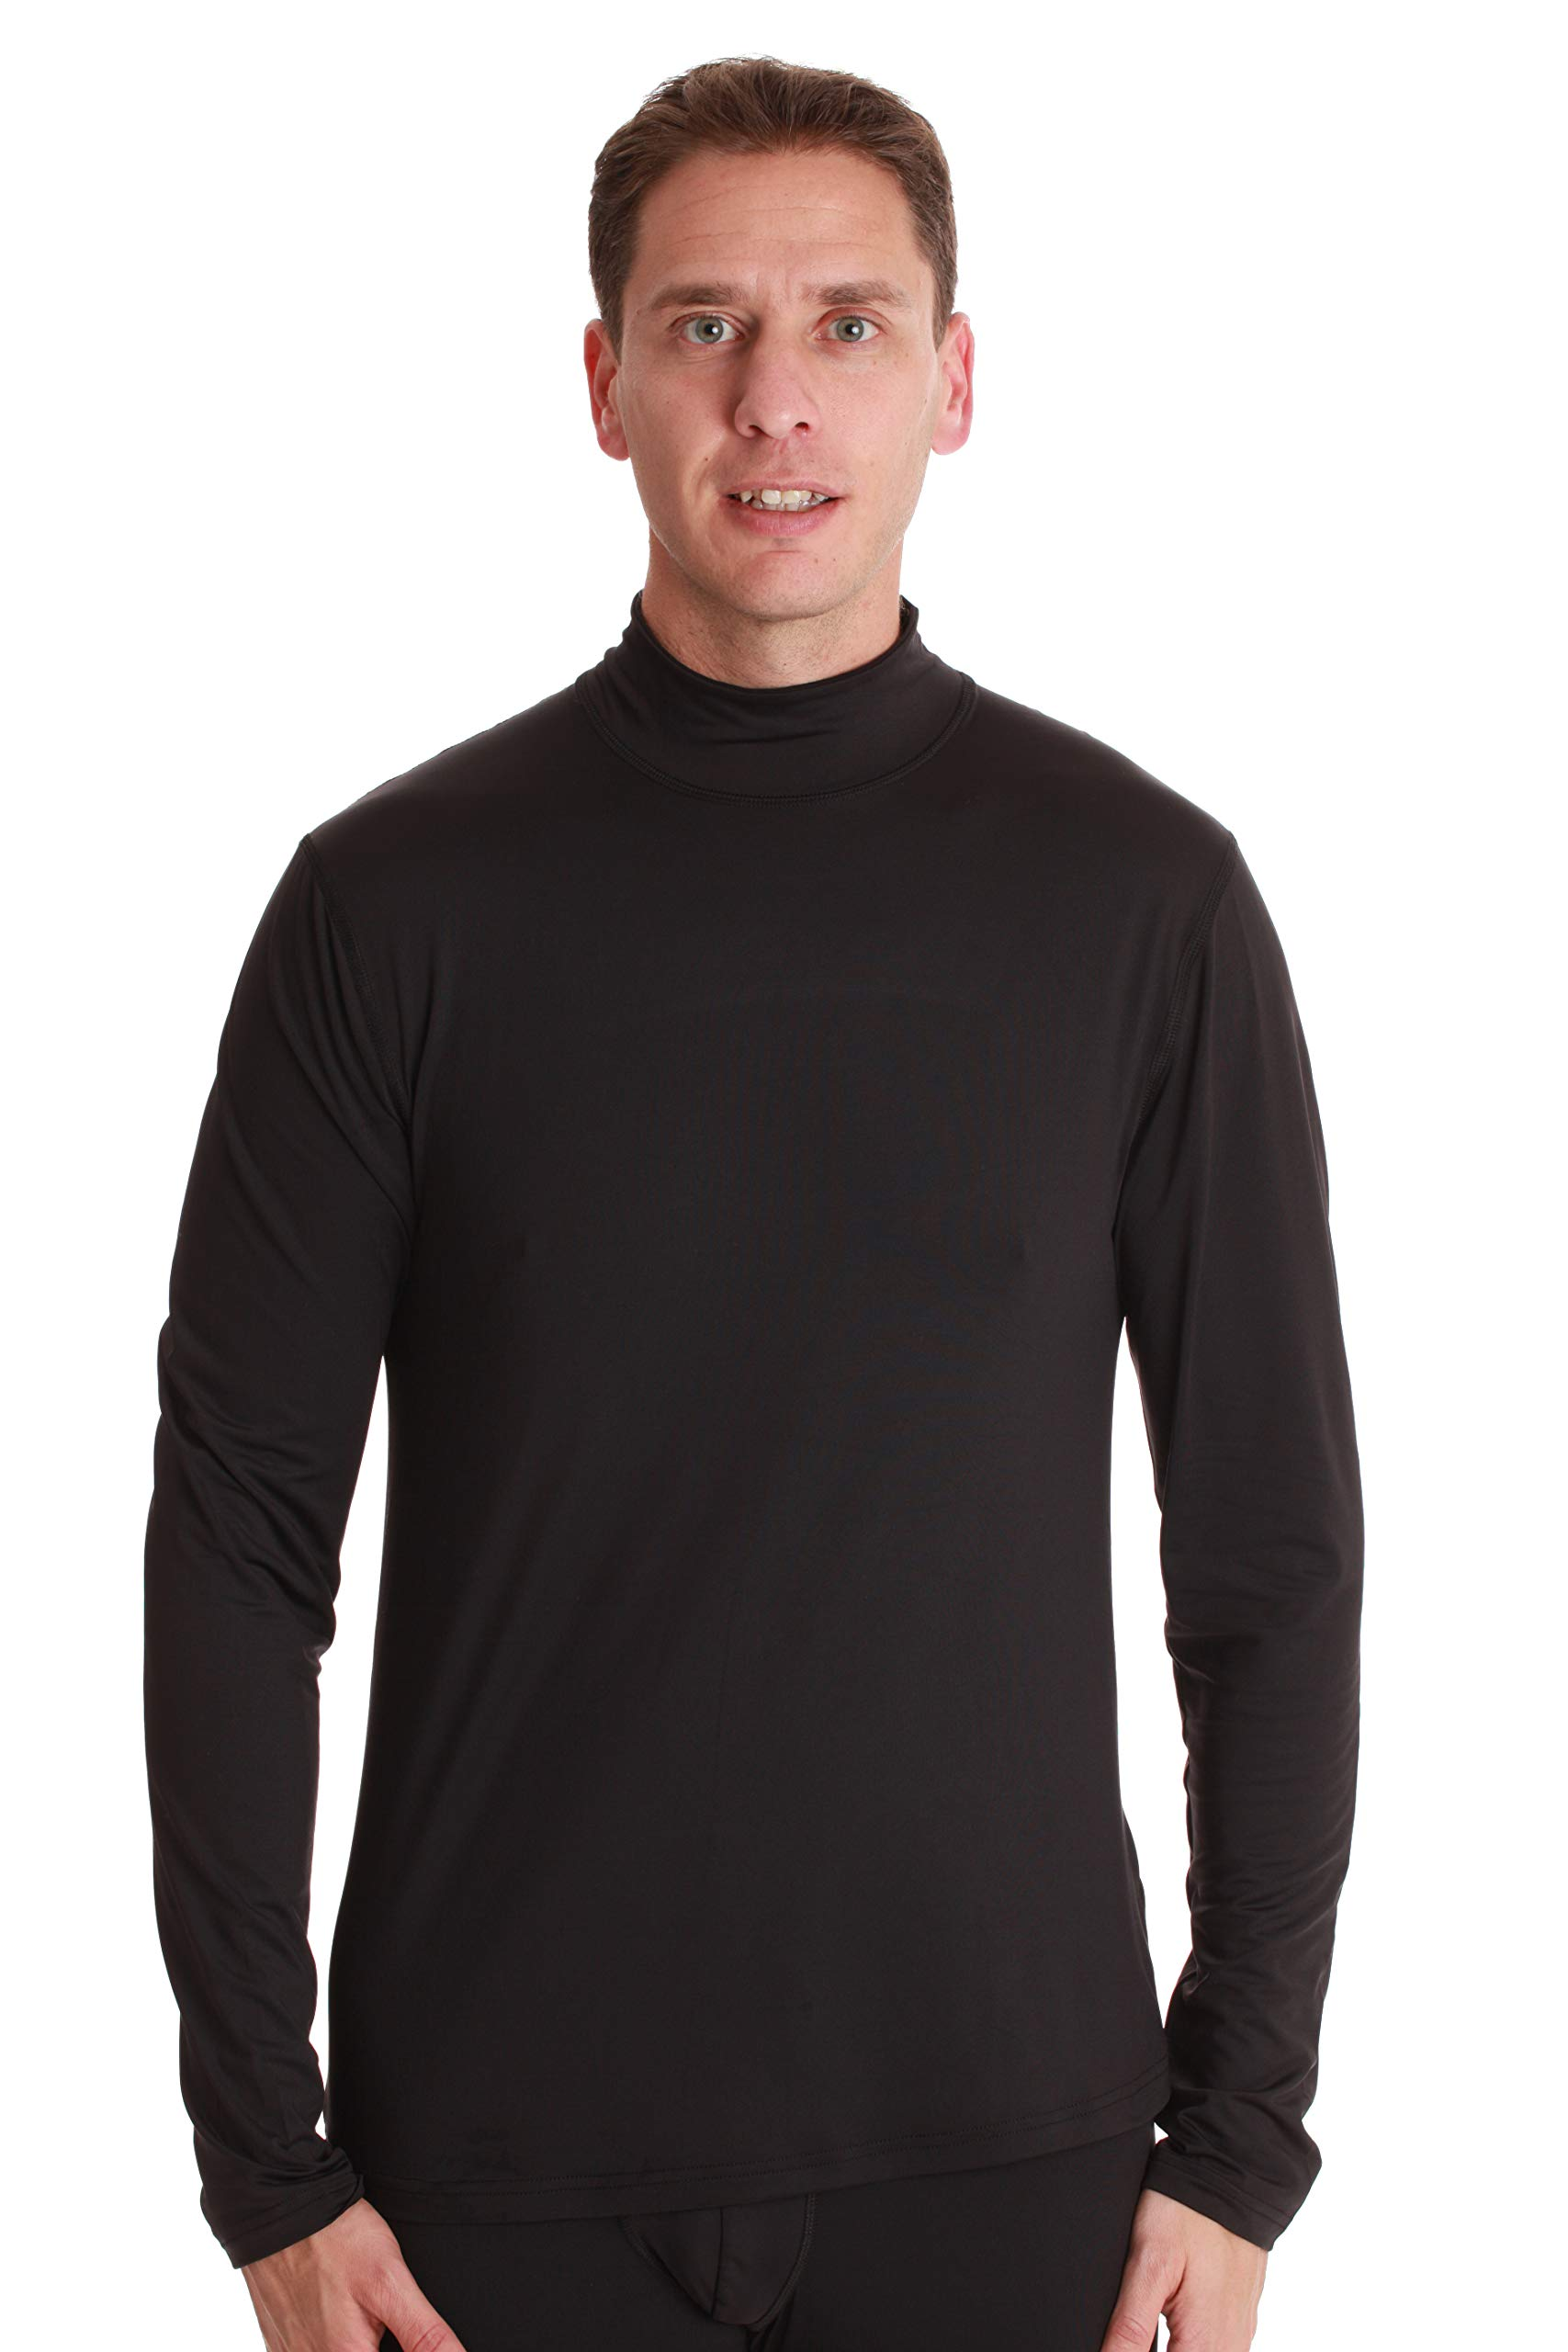 At The Buzzer Mens Performance Thermal Long Sleeve Mock Neck Top 55941-BLK-M Black by At The Buzzer